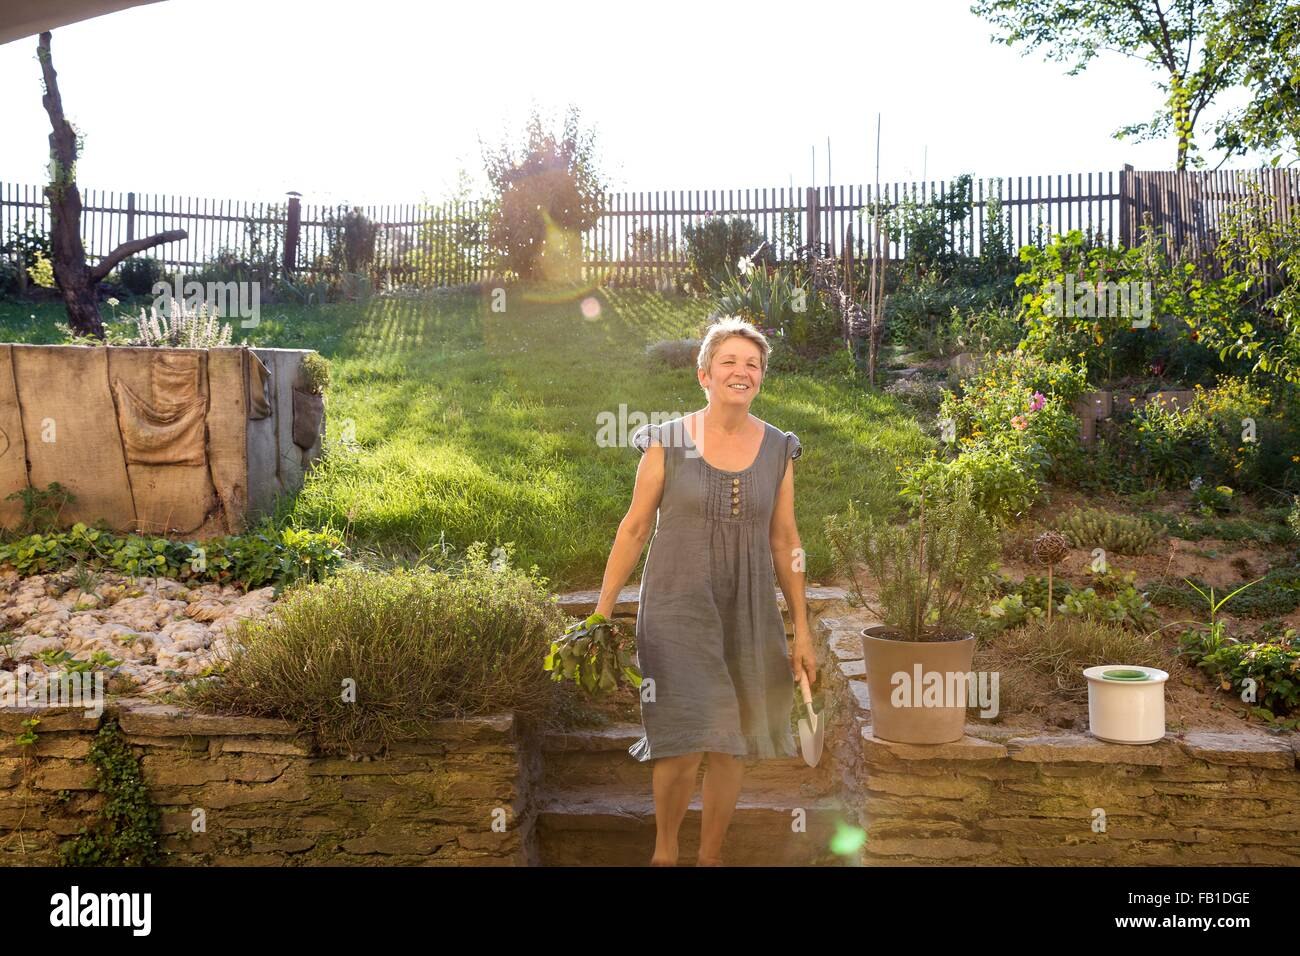 Mature woman gardening, digging up fresh vegetables - Stock Image